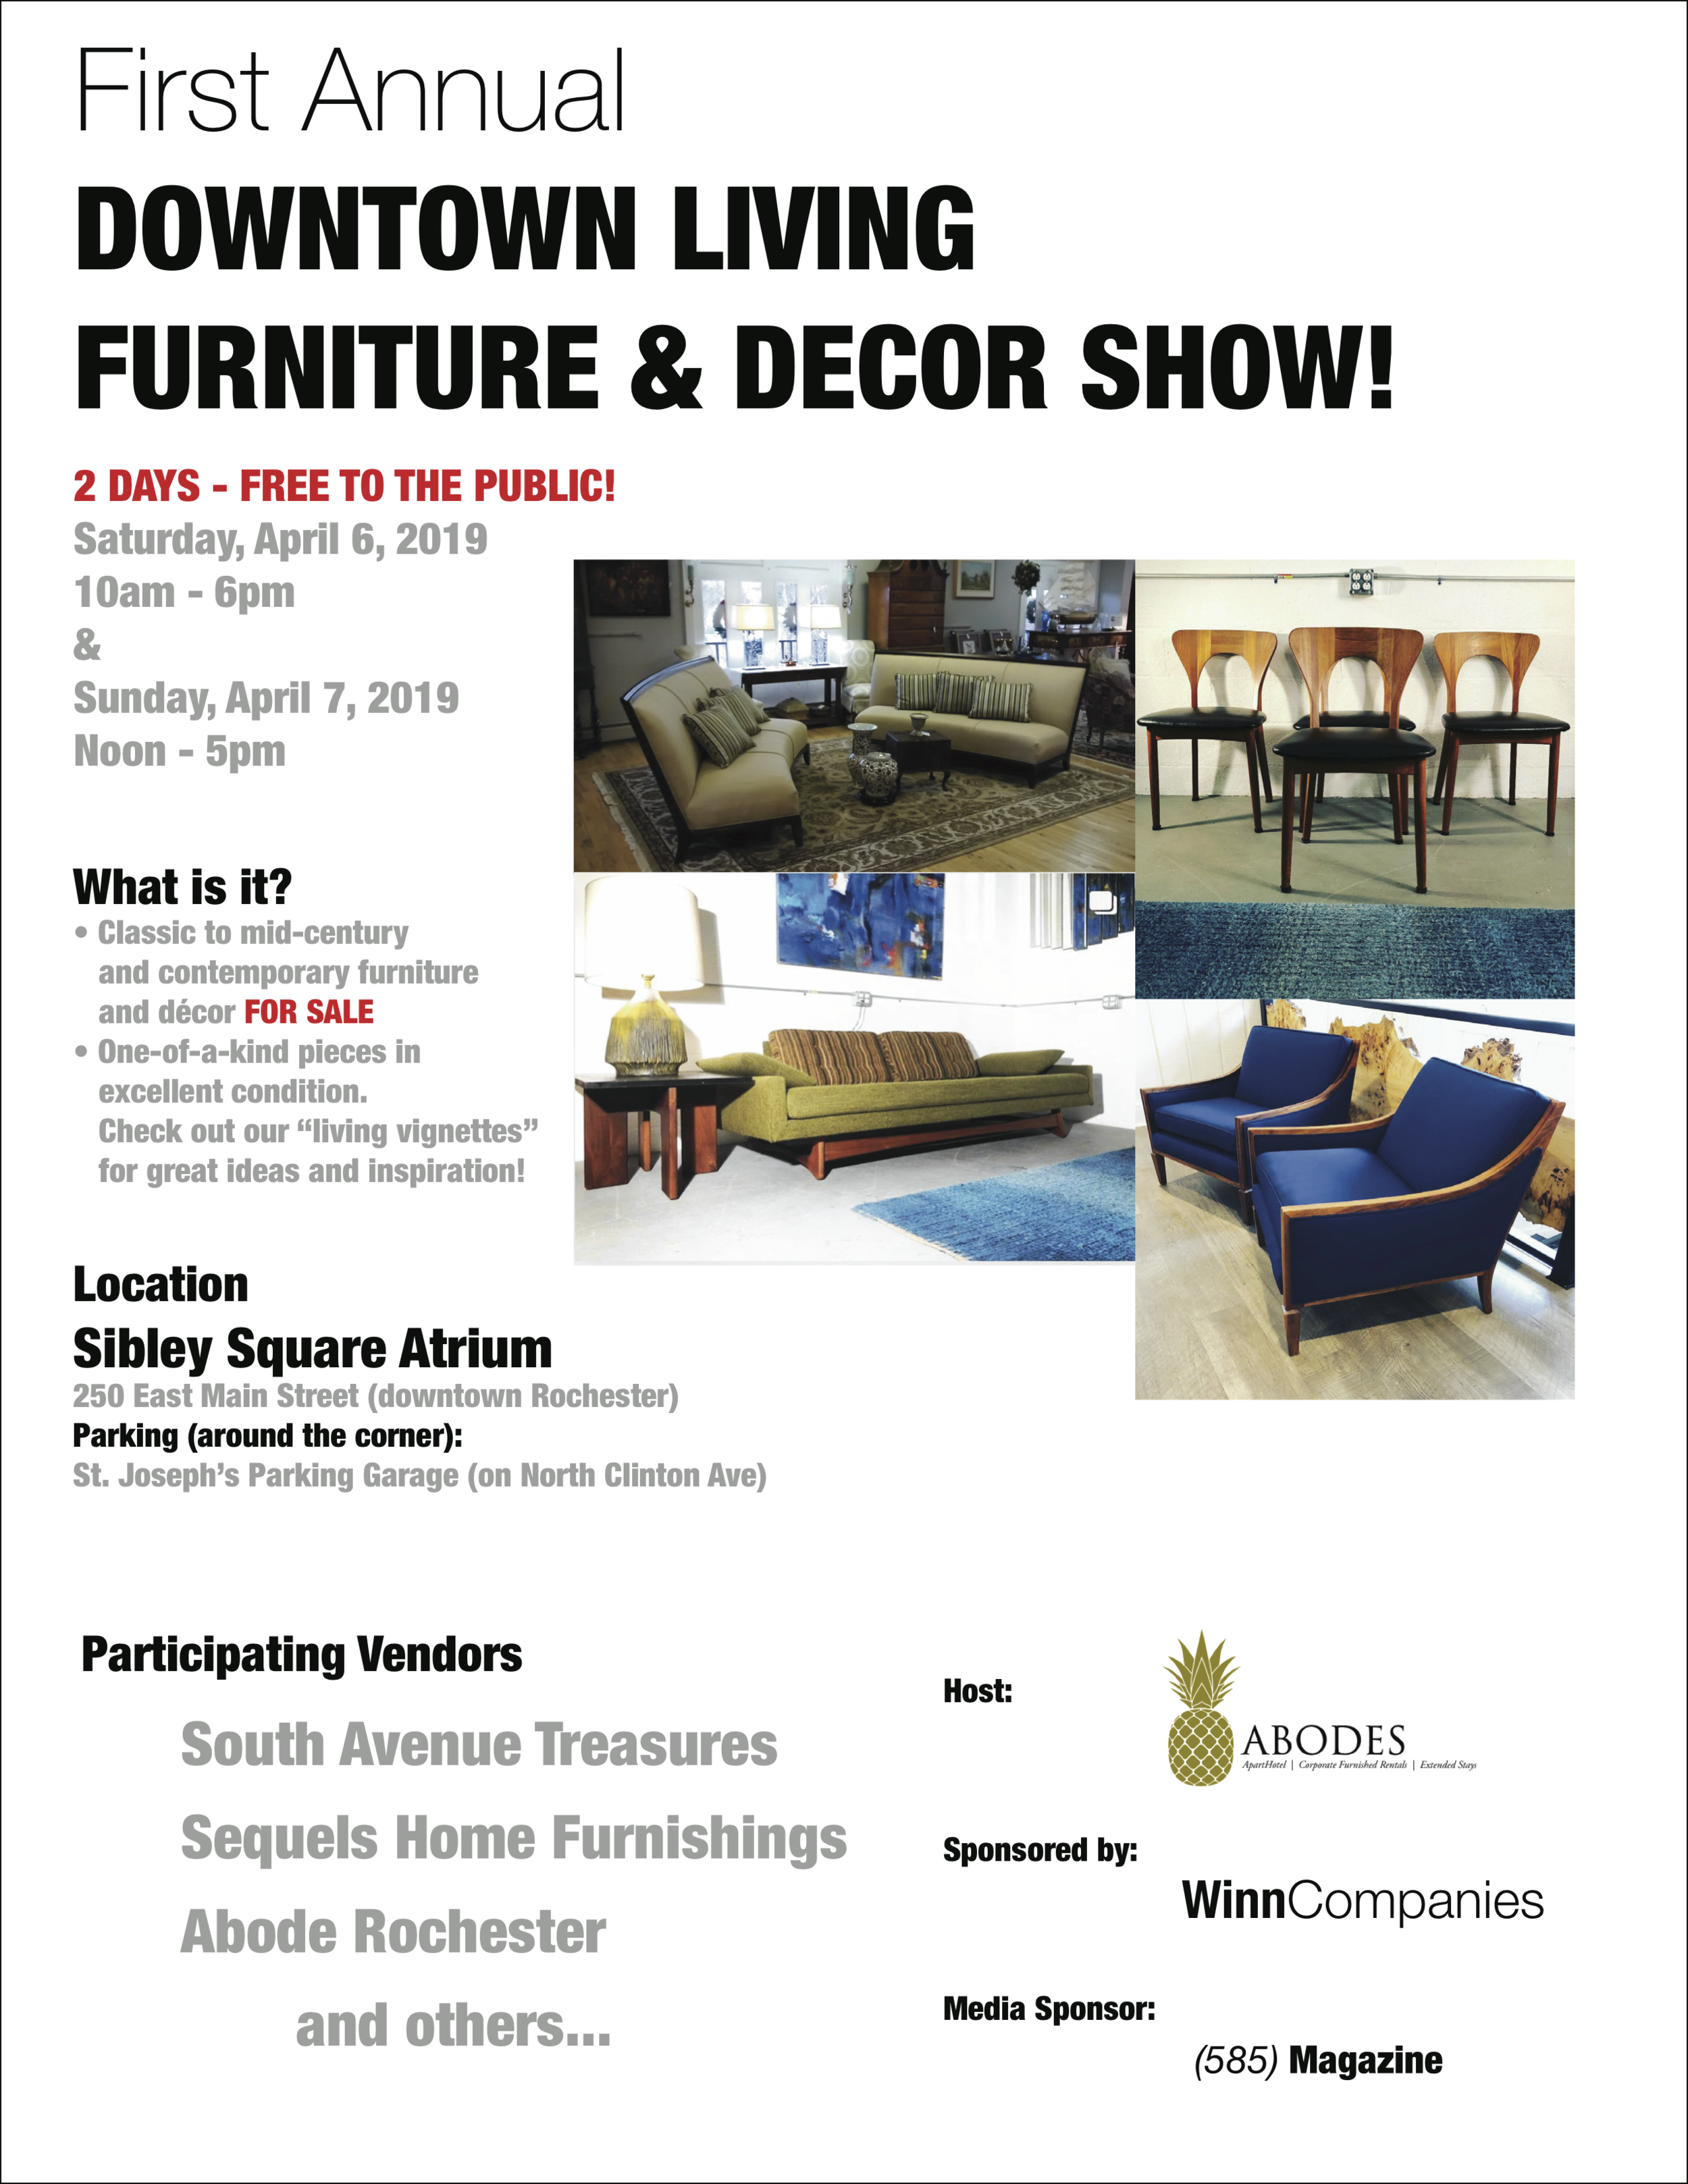 DOWNTOWN FURNITURE SHOW 8.5x11 .png